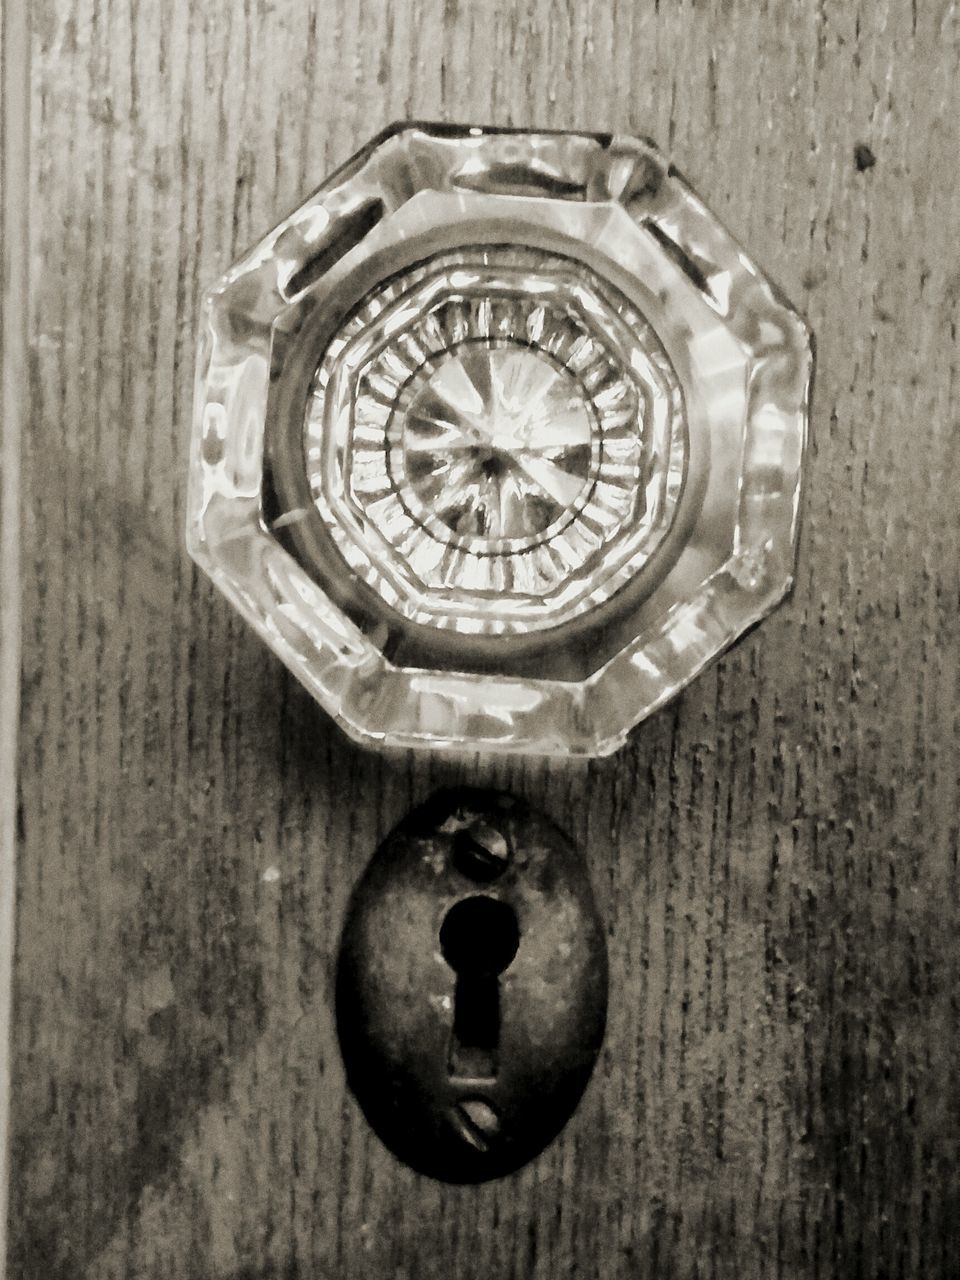 old-fashioned, circle, ornate, time, wood - material, retro styled, clock, watch, pocket watch, close-up, single object, antique, technology, indoors, no people, roman numeral, gear, day, minute hand, clock face, hour hand